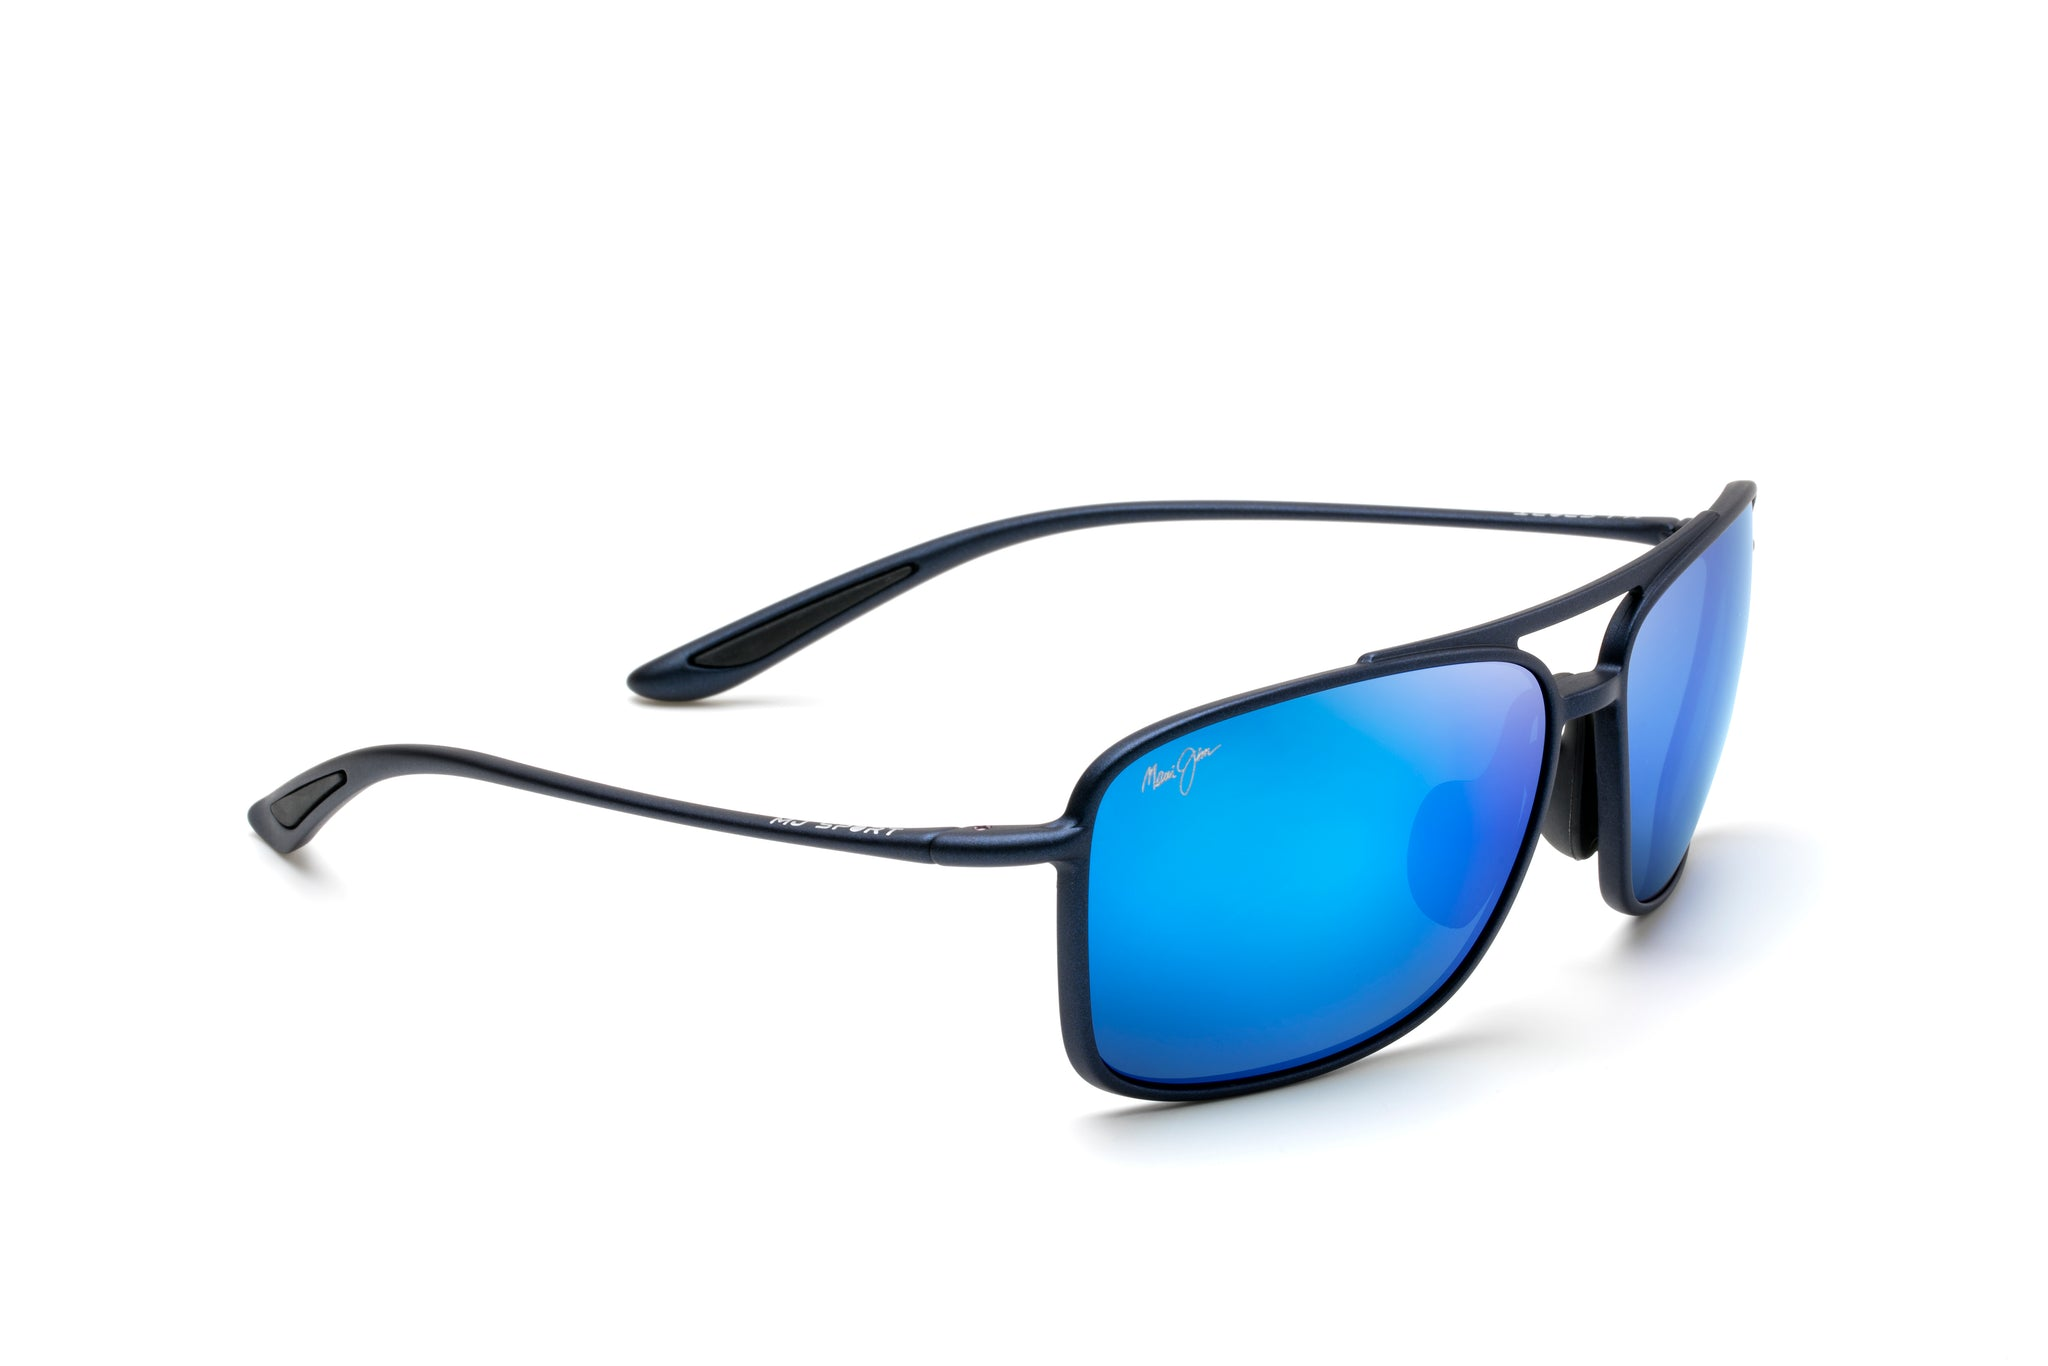 087d727fc4 Maui Jim Kaupo Gap 437 Sunglasses span - Matte Blue with Polarized Blue  Hawaii